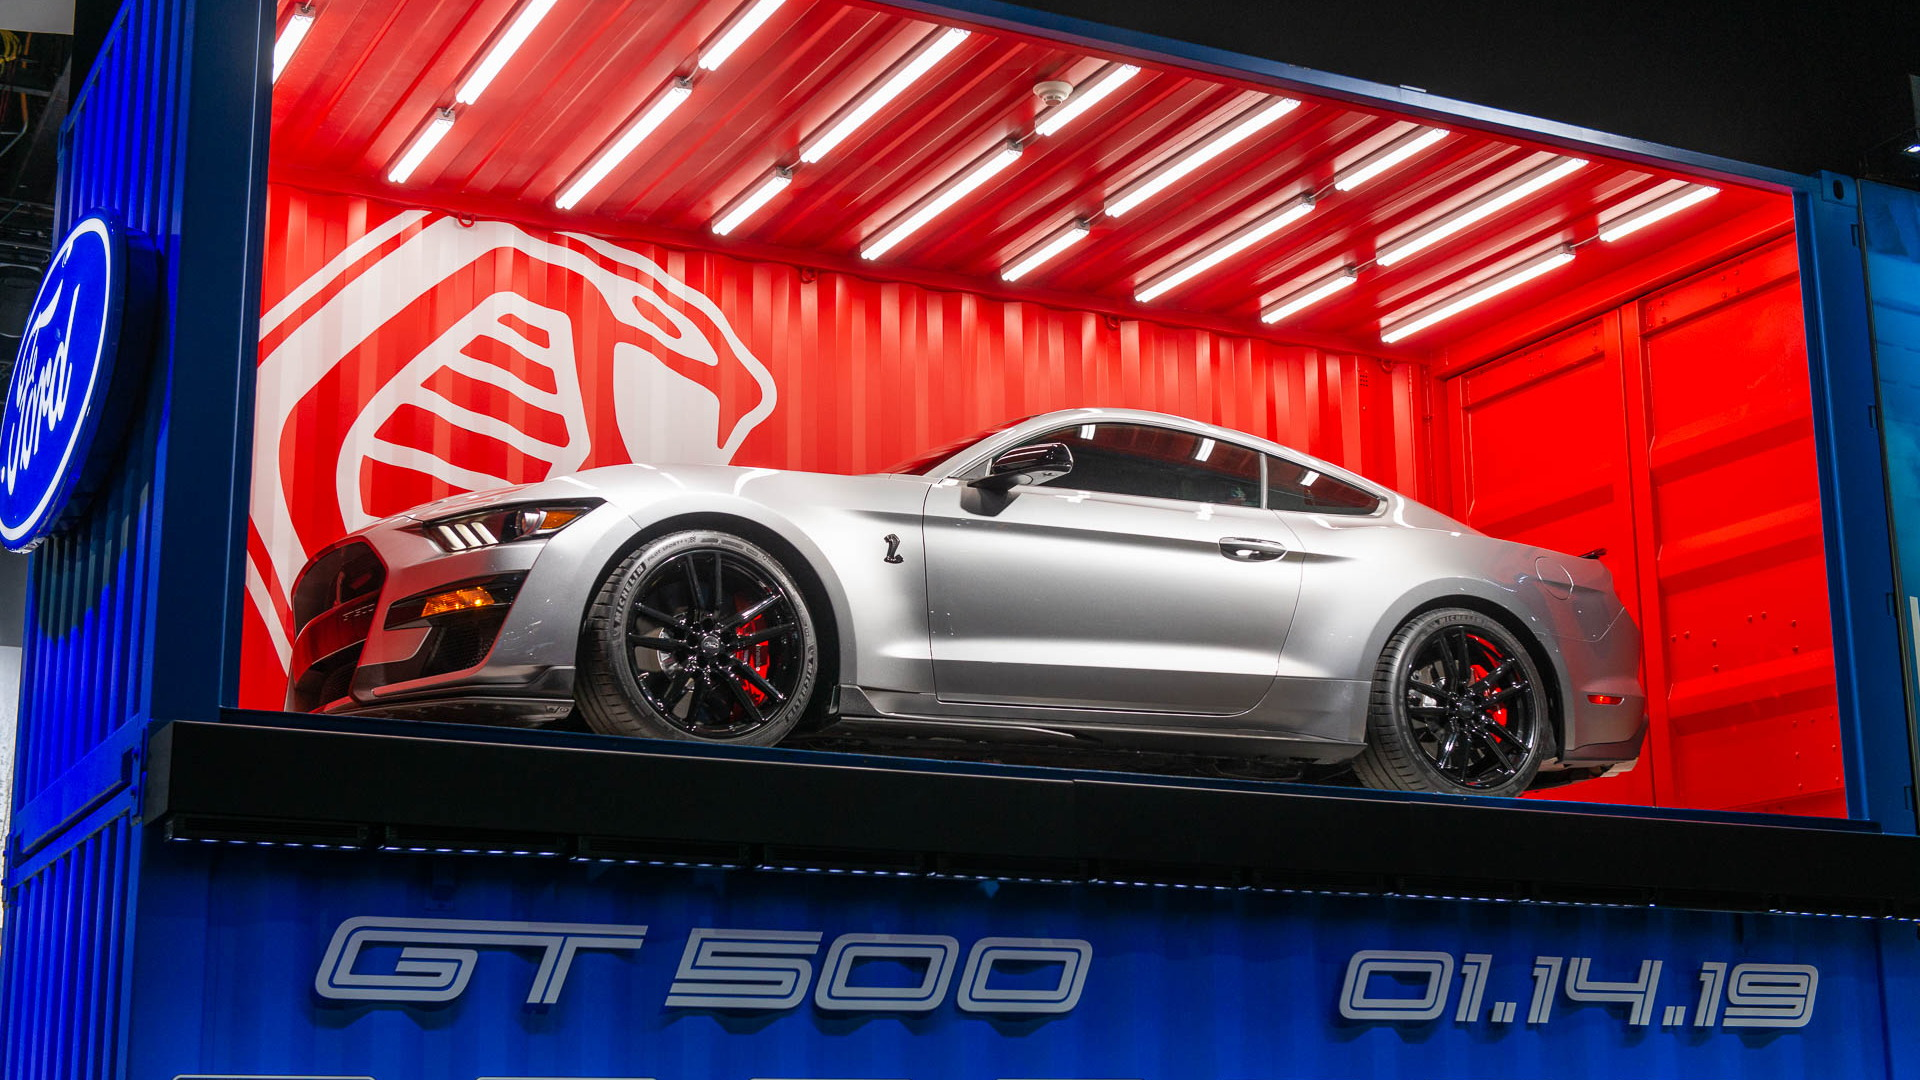 2020 Ford Mustang Shelby GT500, 2019 Detroit auto show